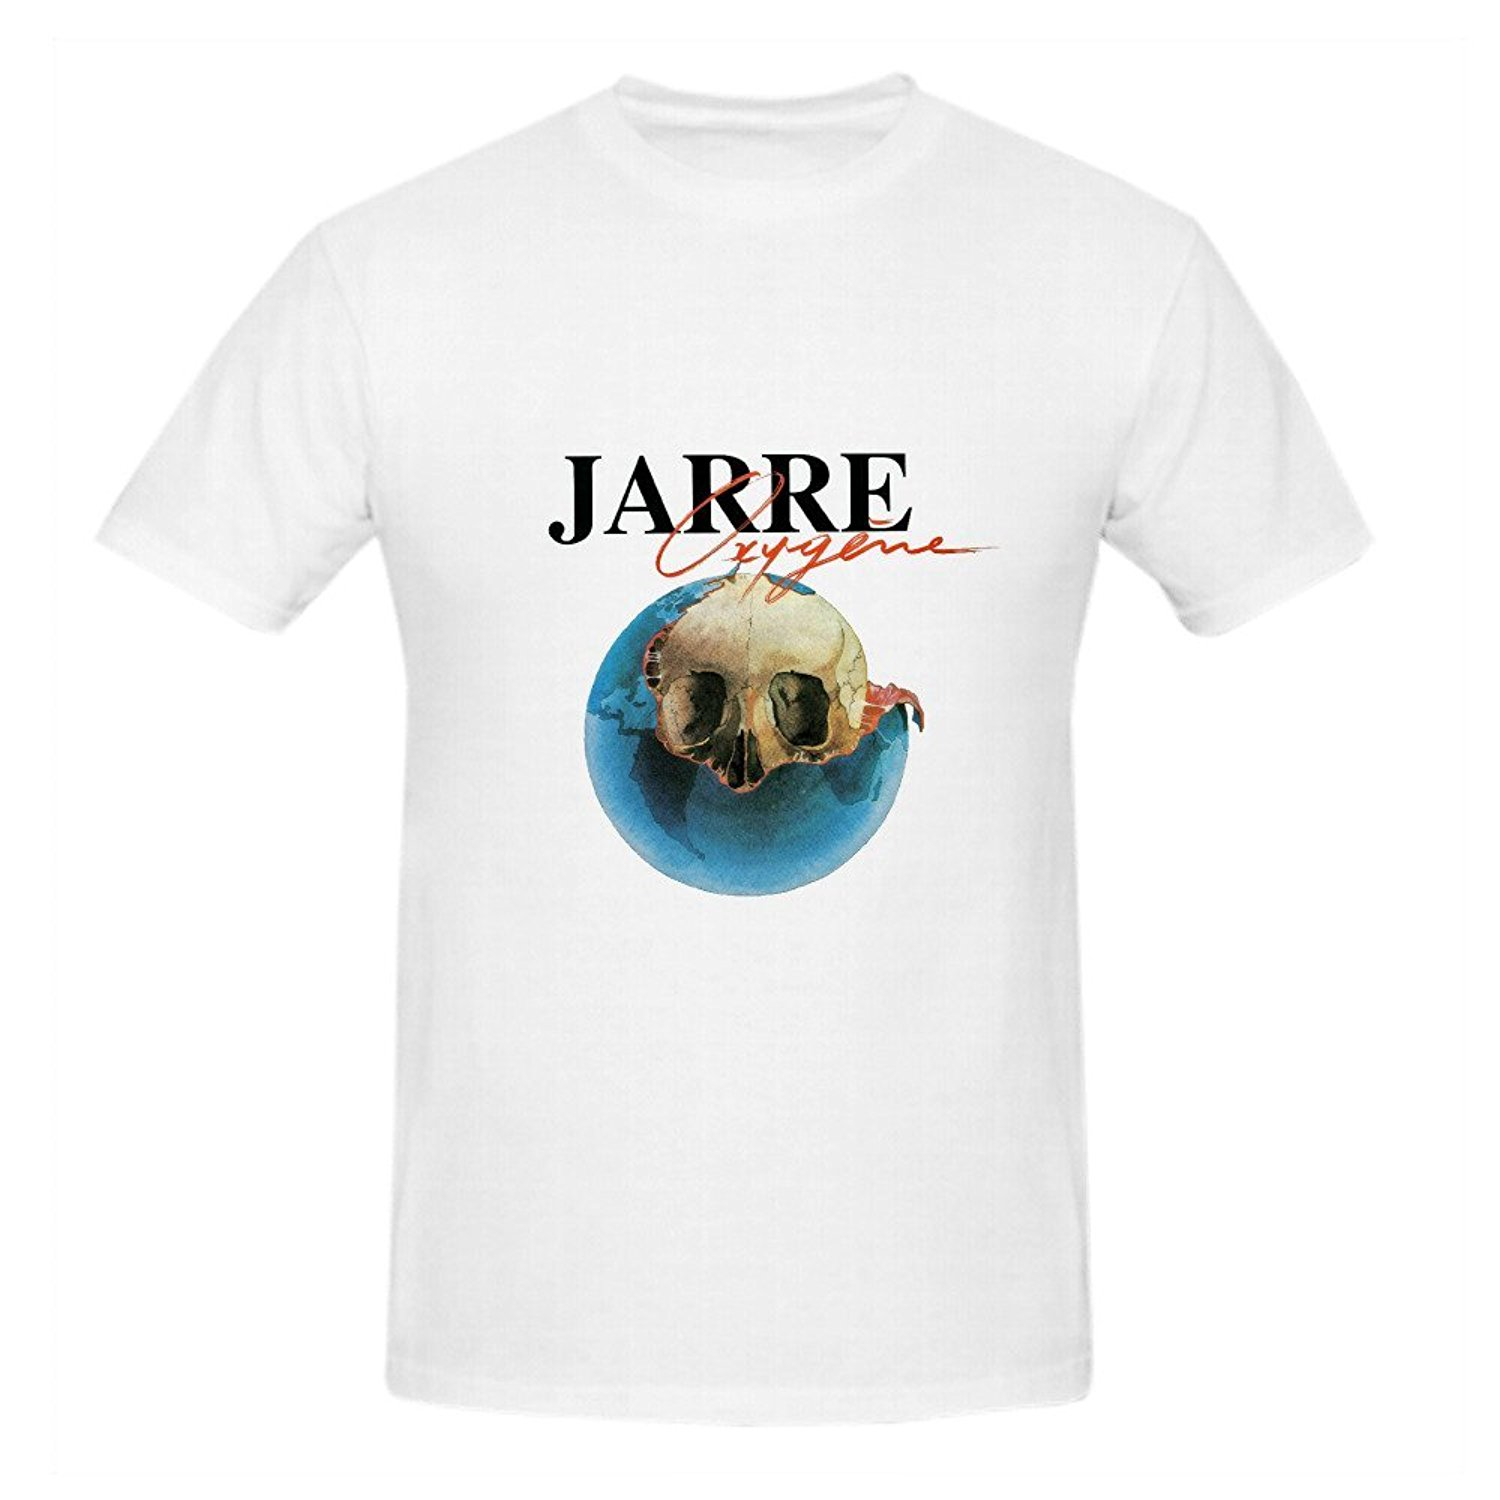 GILDAN Cartoon Print Short Sleeve T Shirt Free Shipping Jean Michel Jarre Oxygne Men Tee Shirts